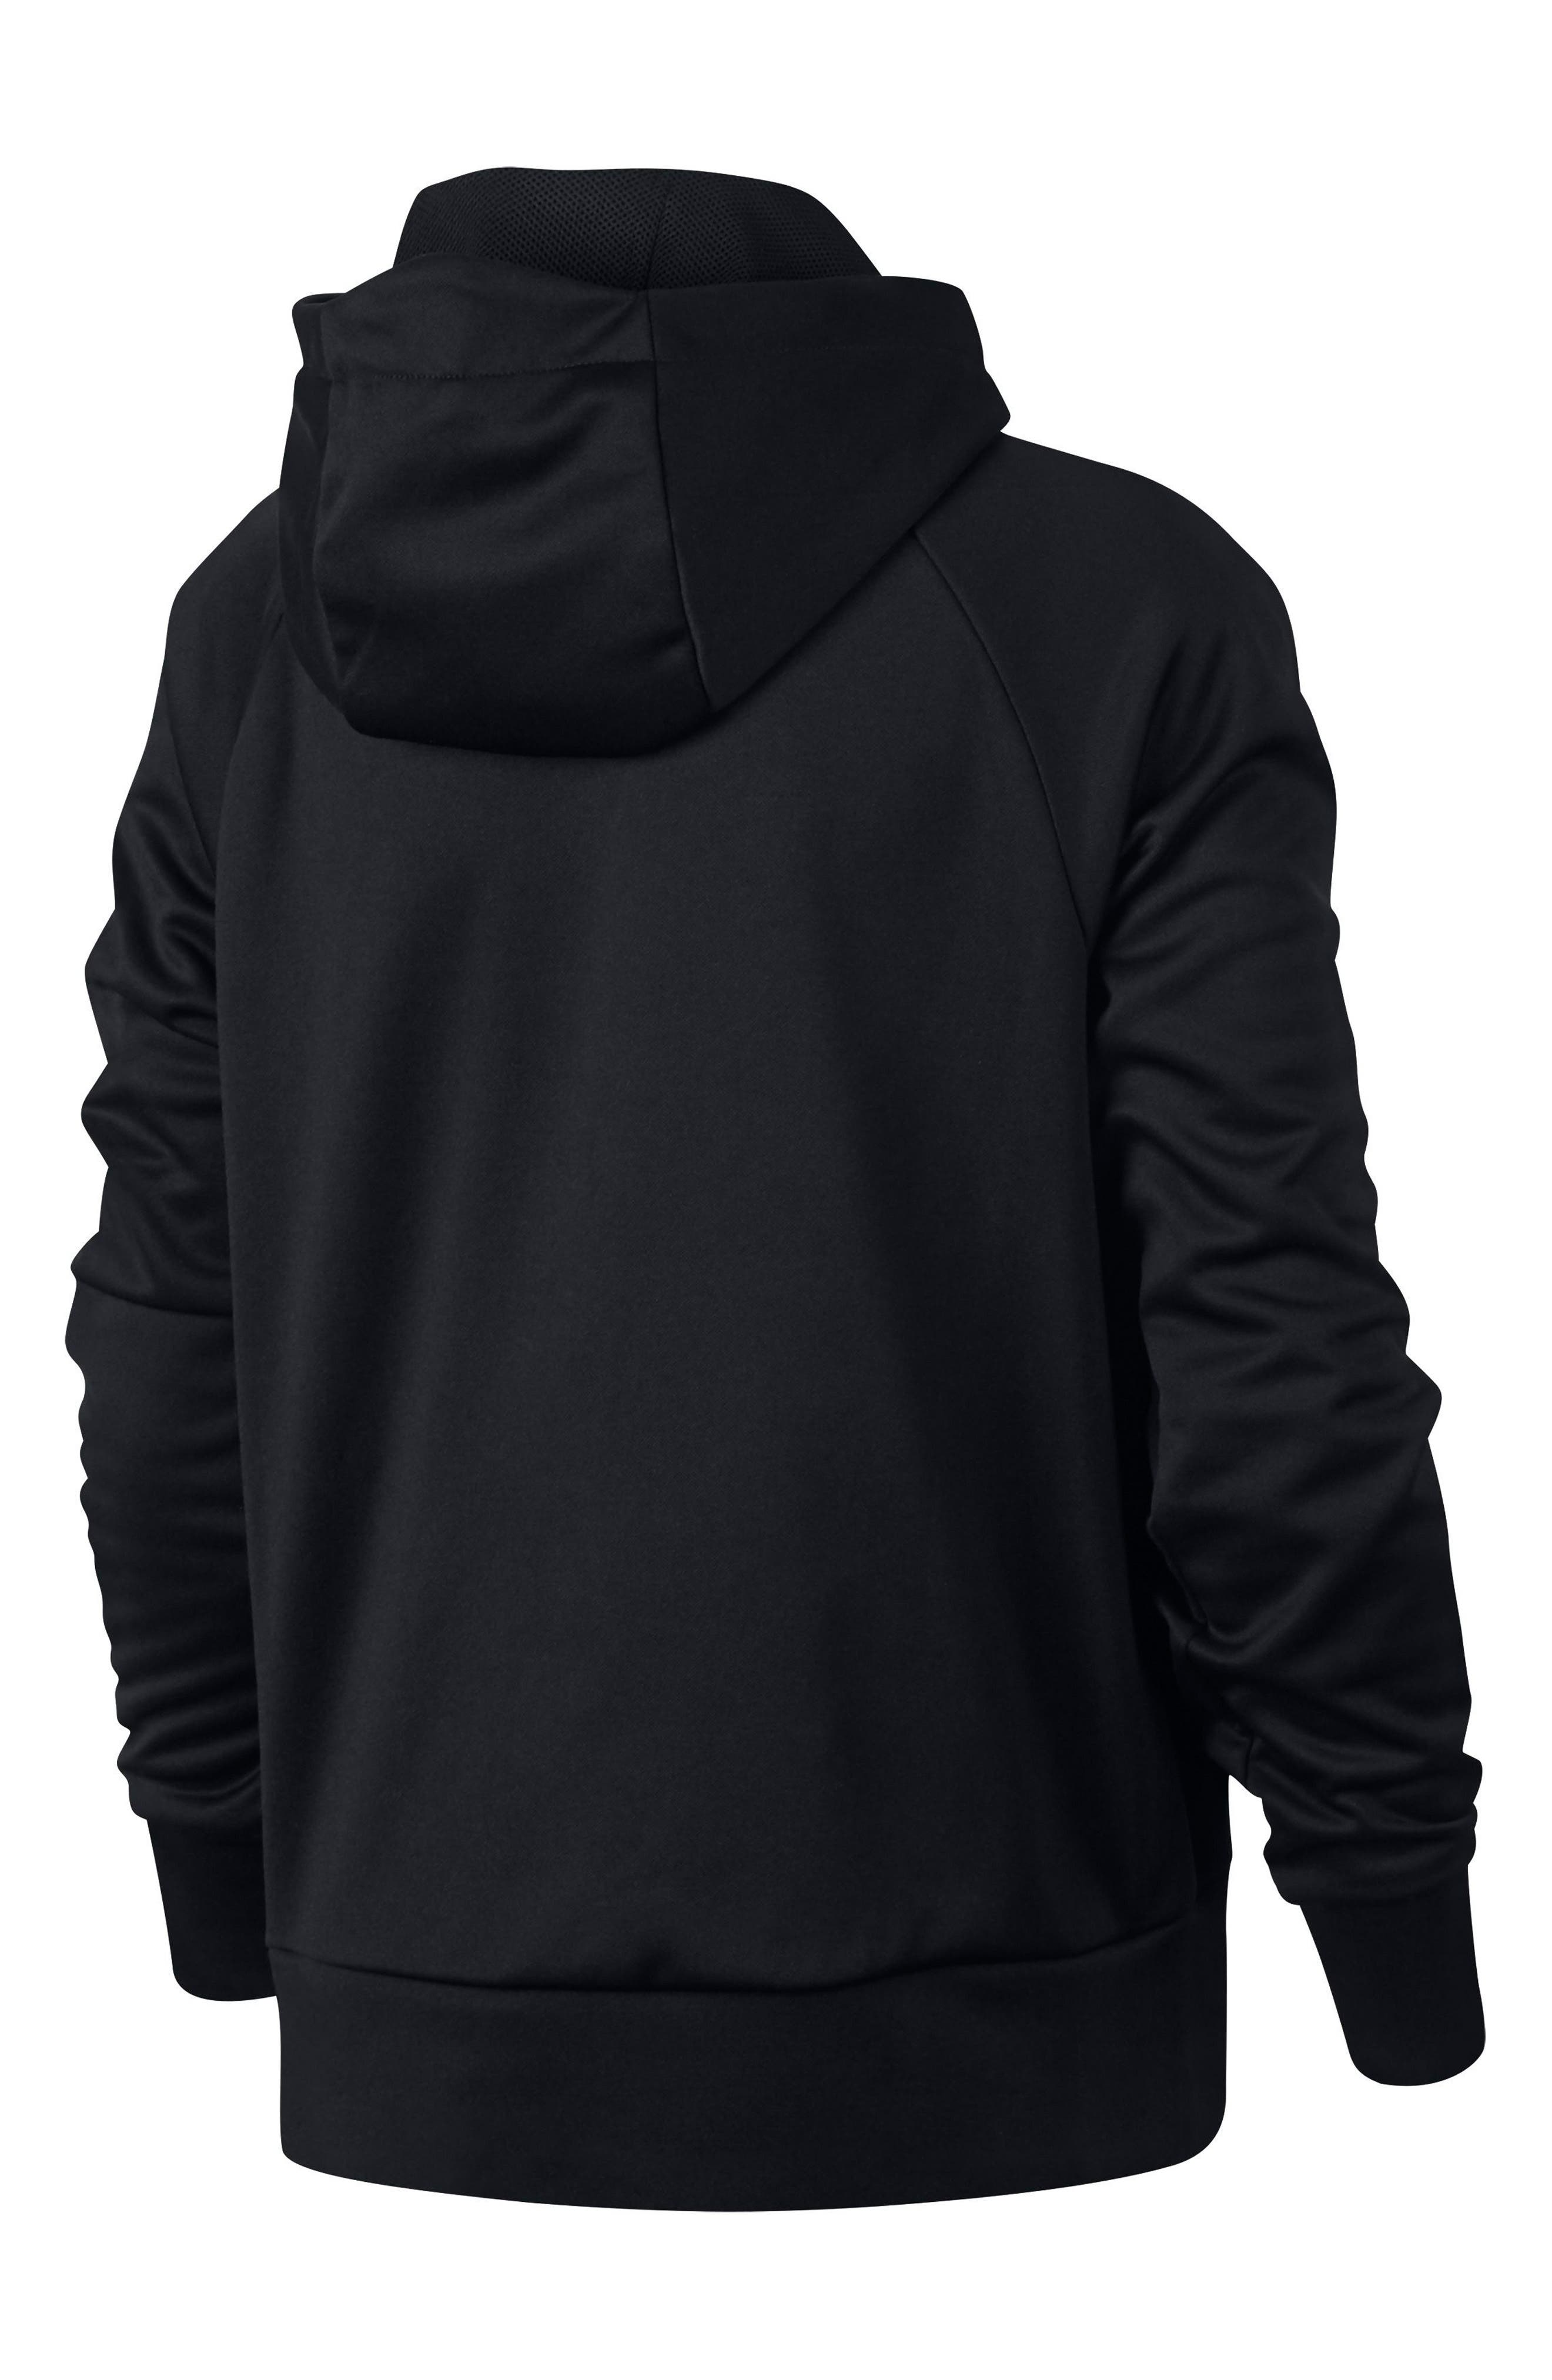 Therma Dry Hoodie,                             Alternate thumbnail 2, color,                             010